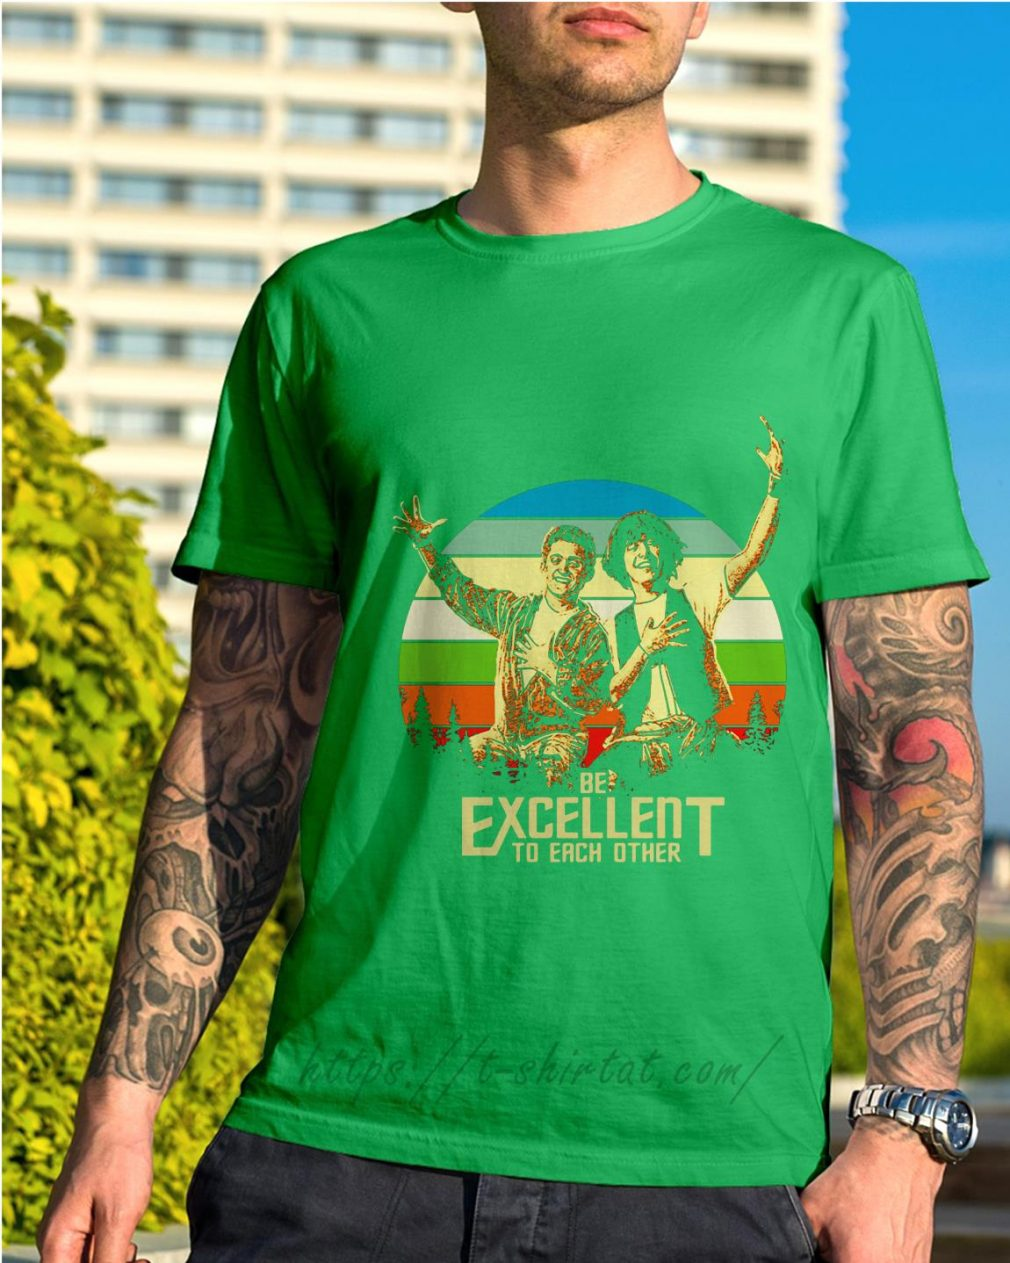 Bill and Ted's be excellent to each other vintage Shirt green